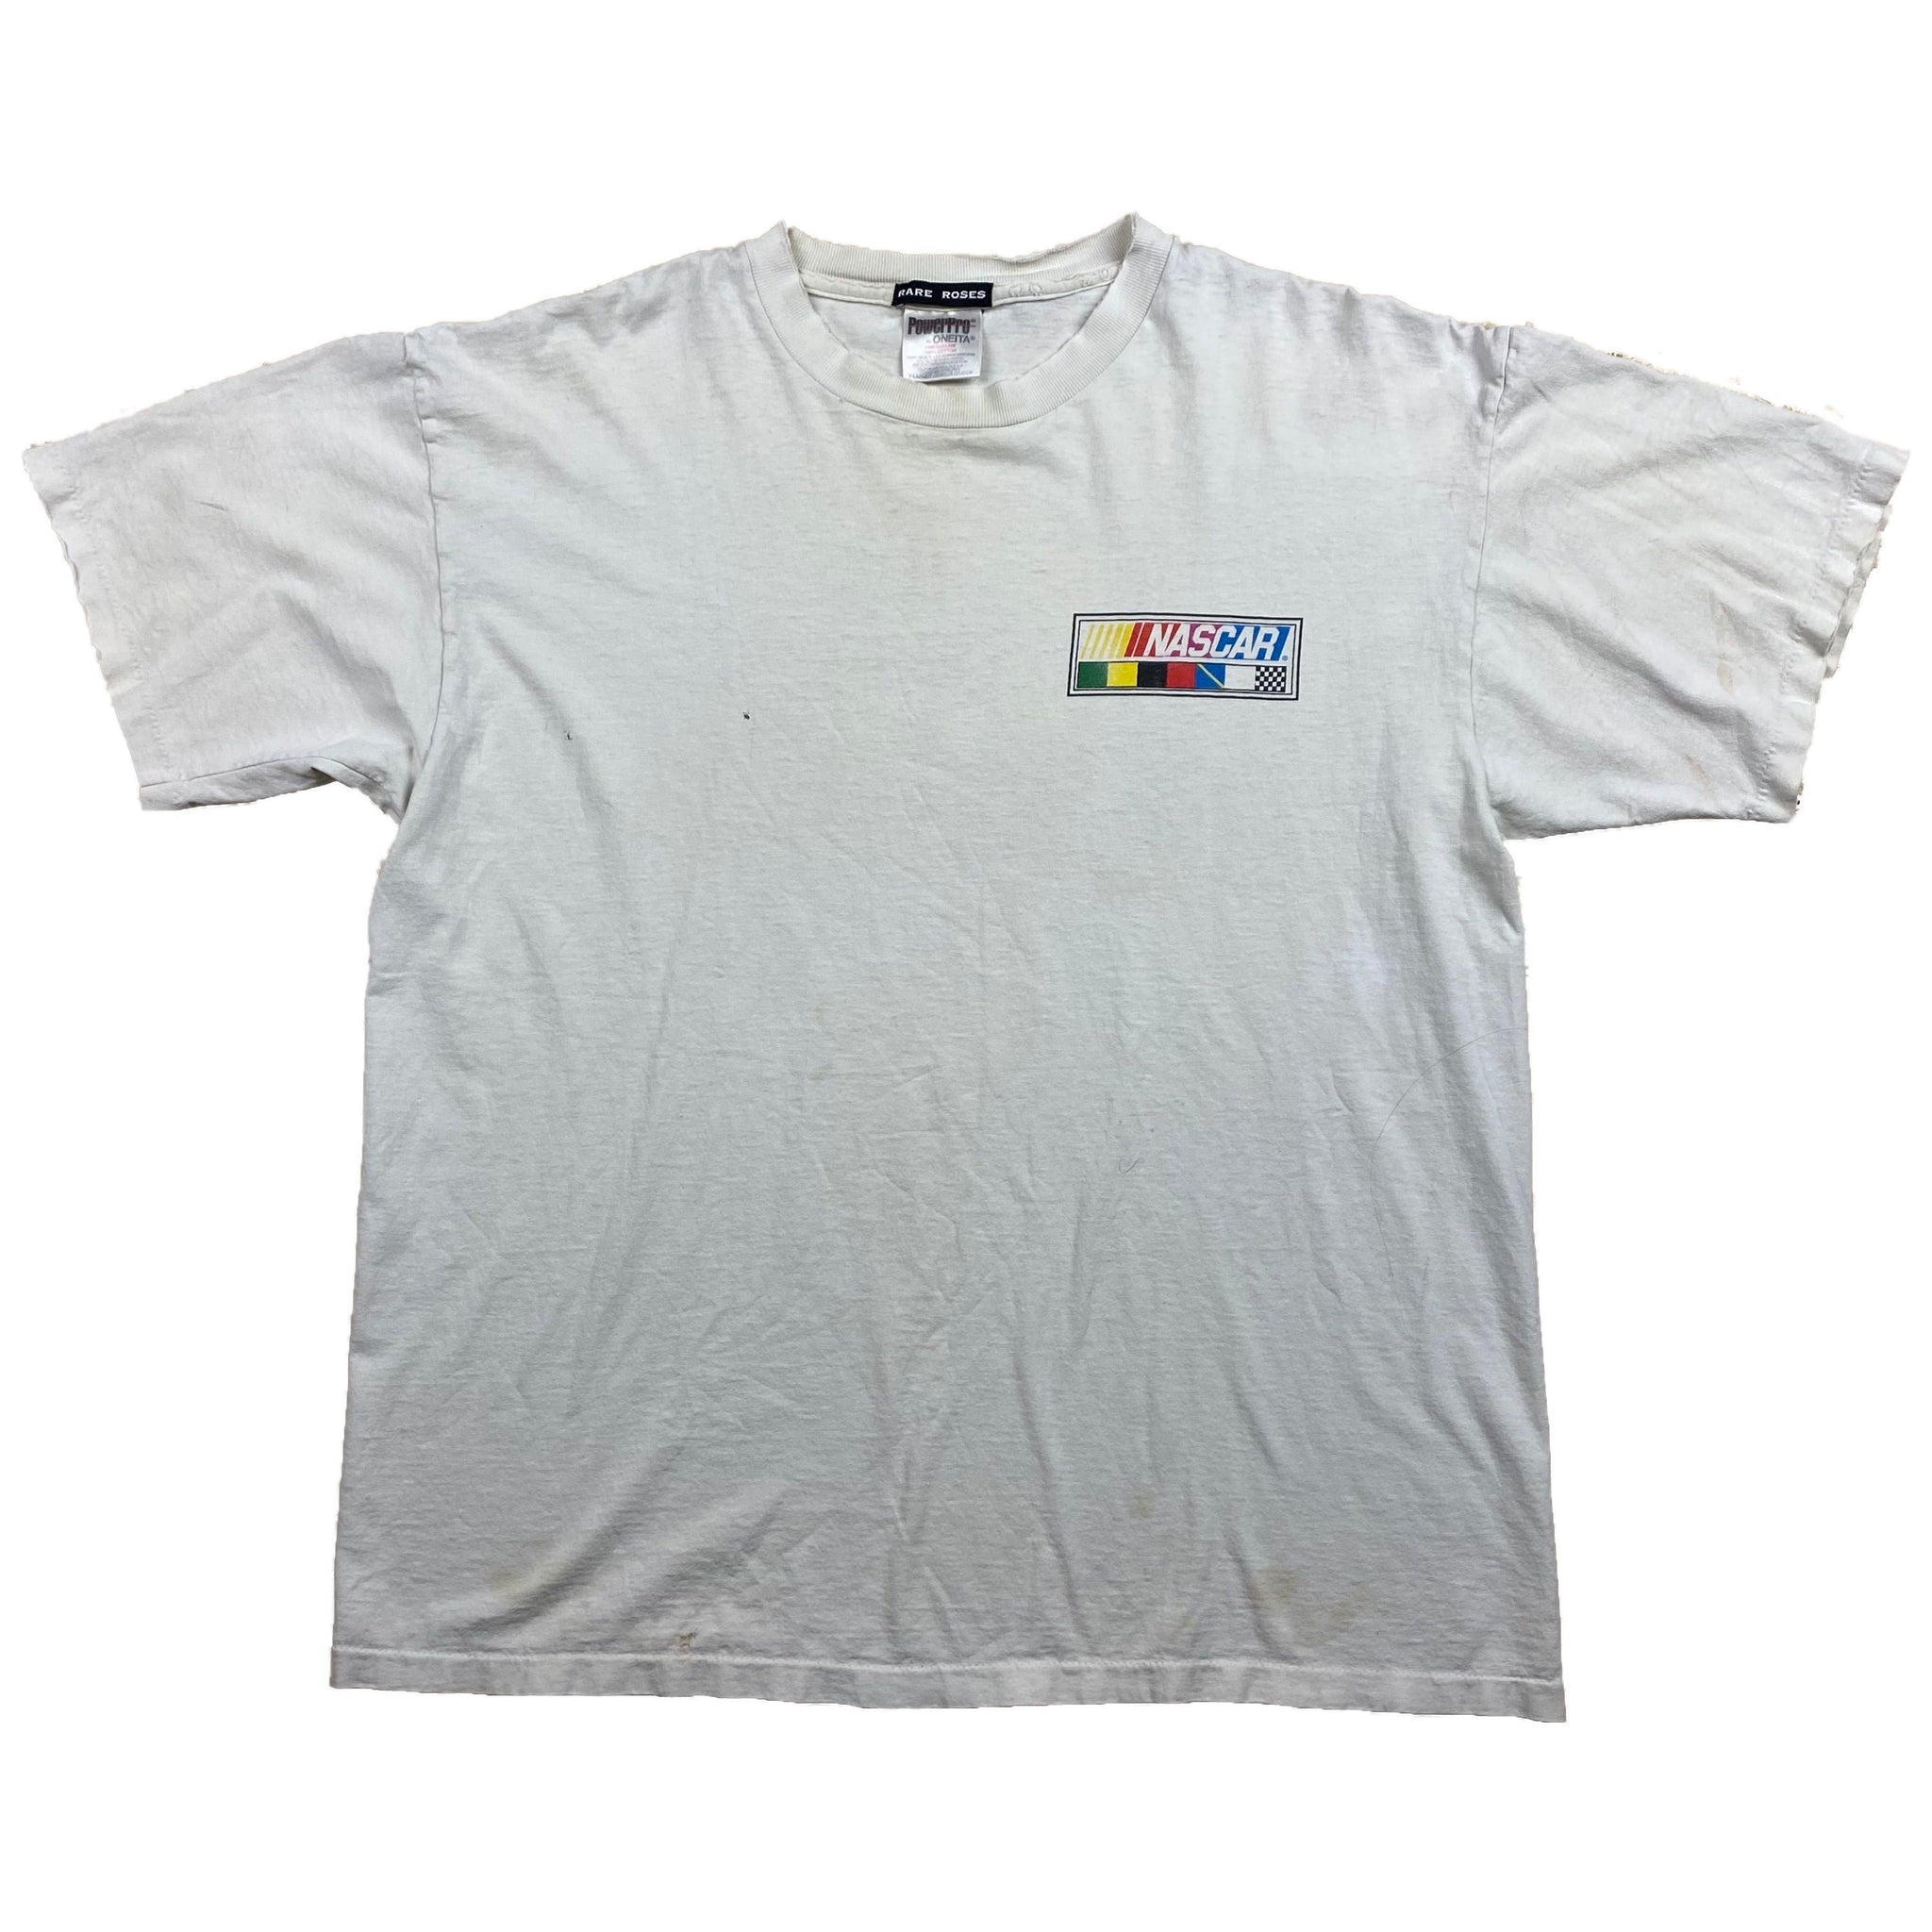 Distressed Nascar Flags Tee